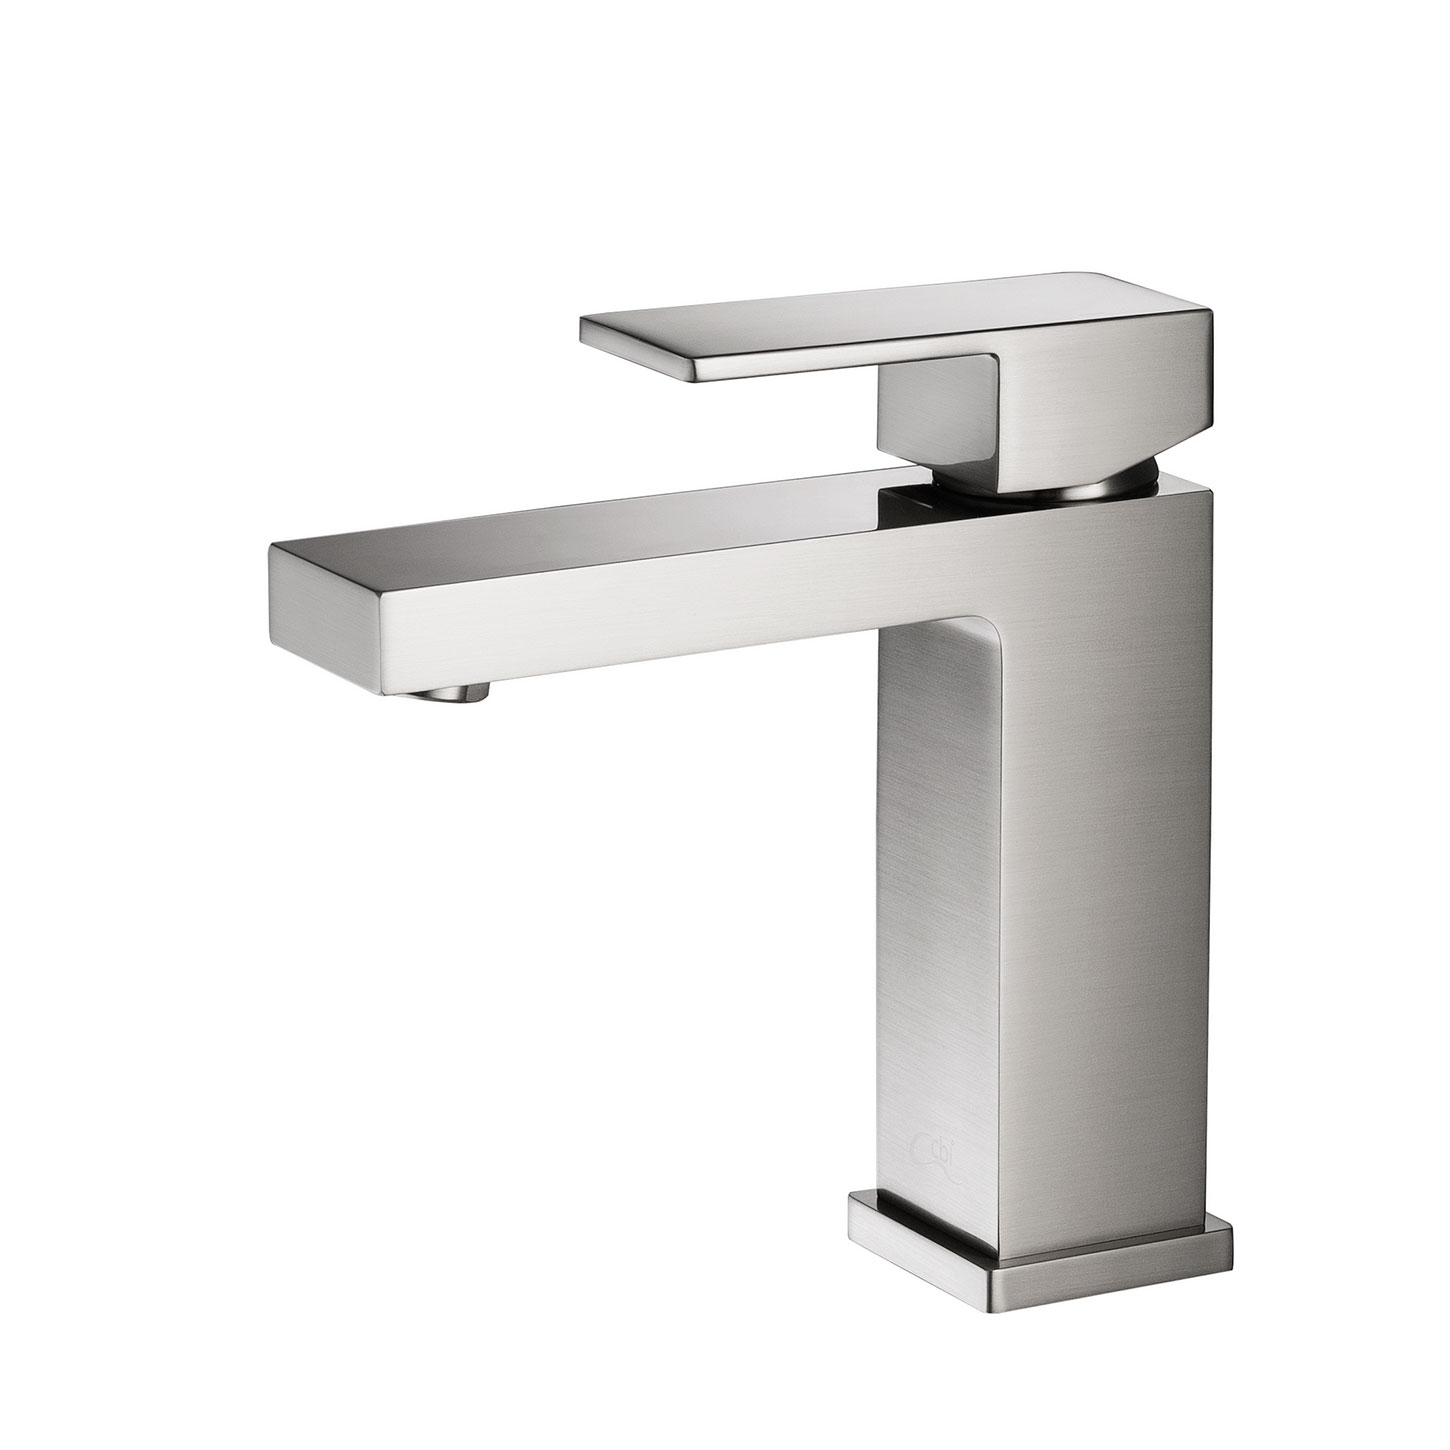 get a tesla lavatory hole collections faucet delta single handle chrome faucets d assembly drain sink with bathtub metal in bathroom